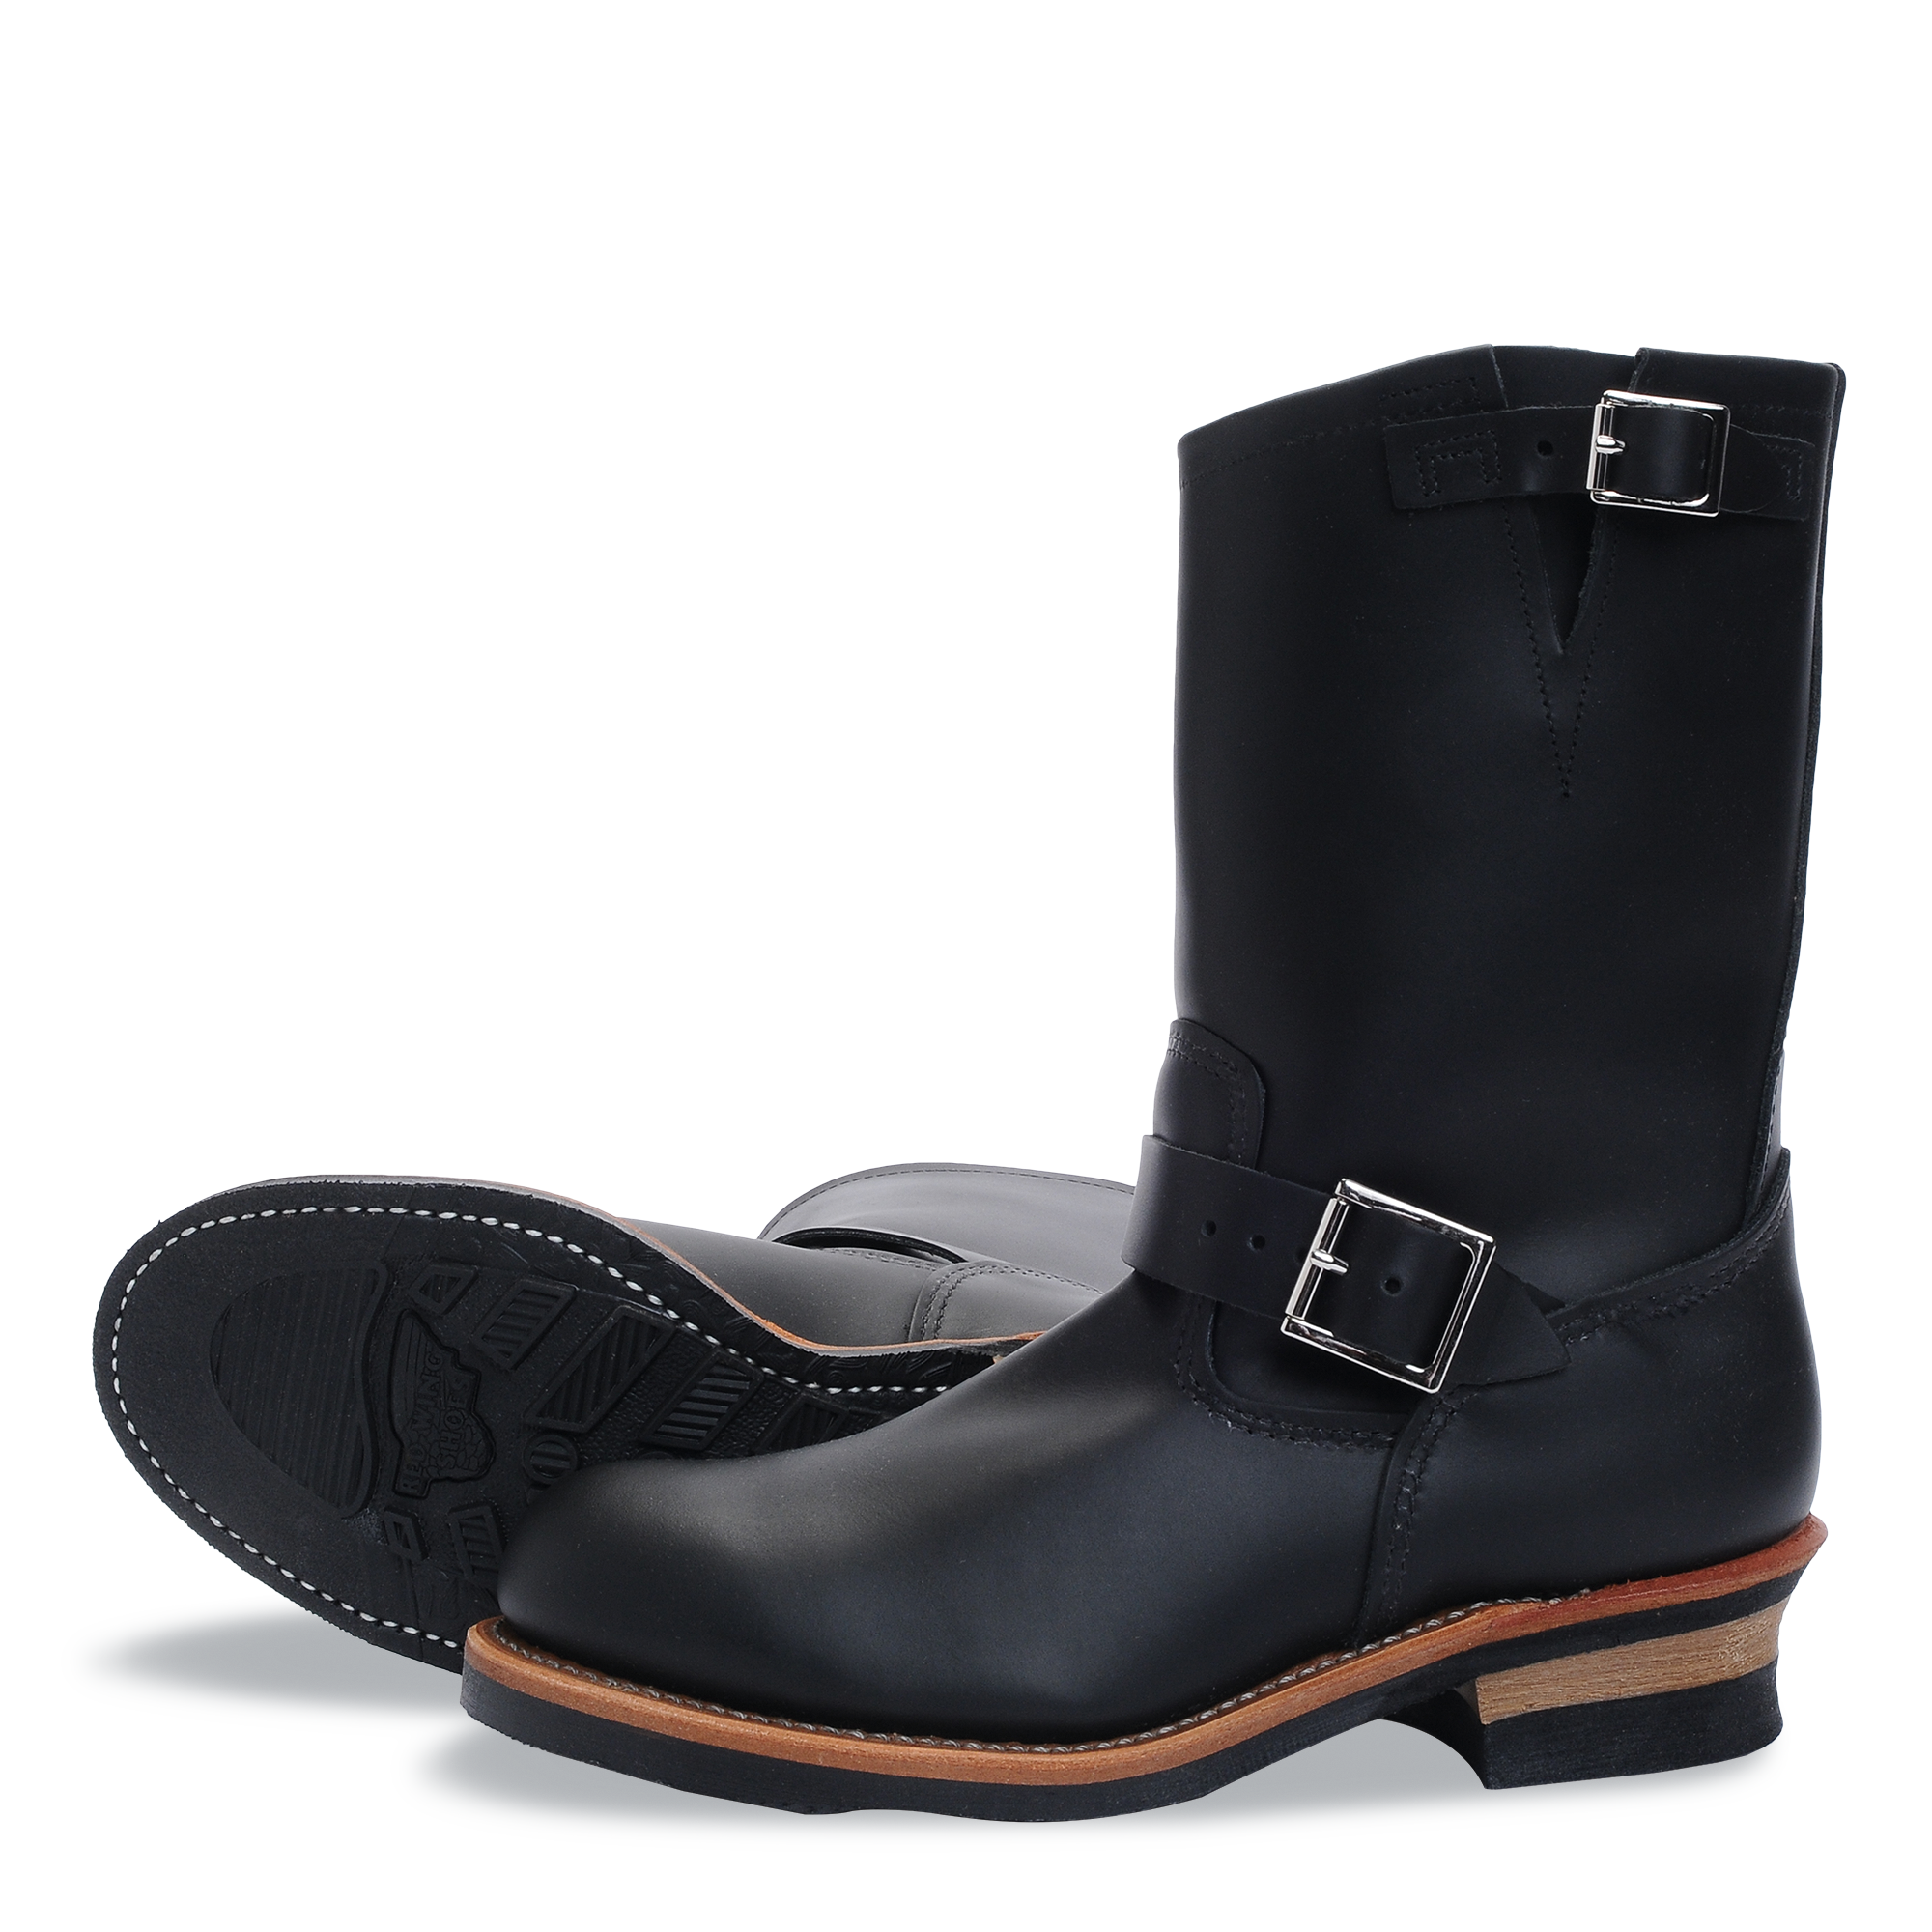 Red Wing Engineer Boot 2268 Black Chrome Leather mit Stahlkappe